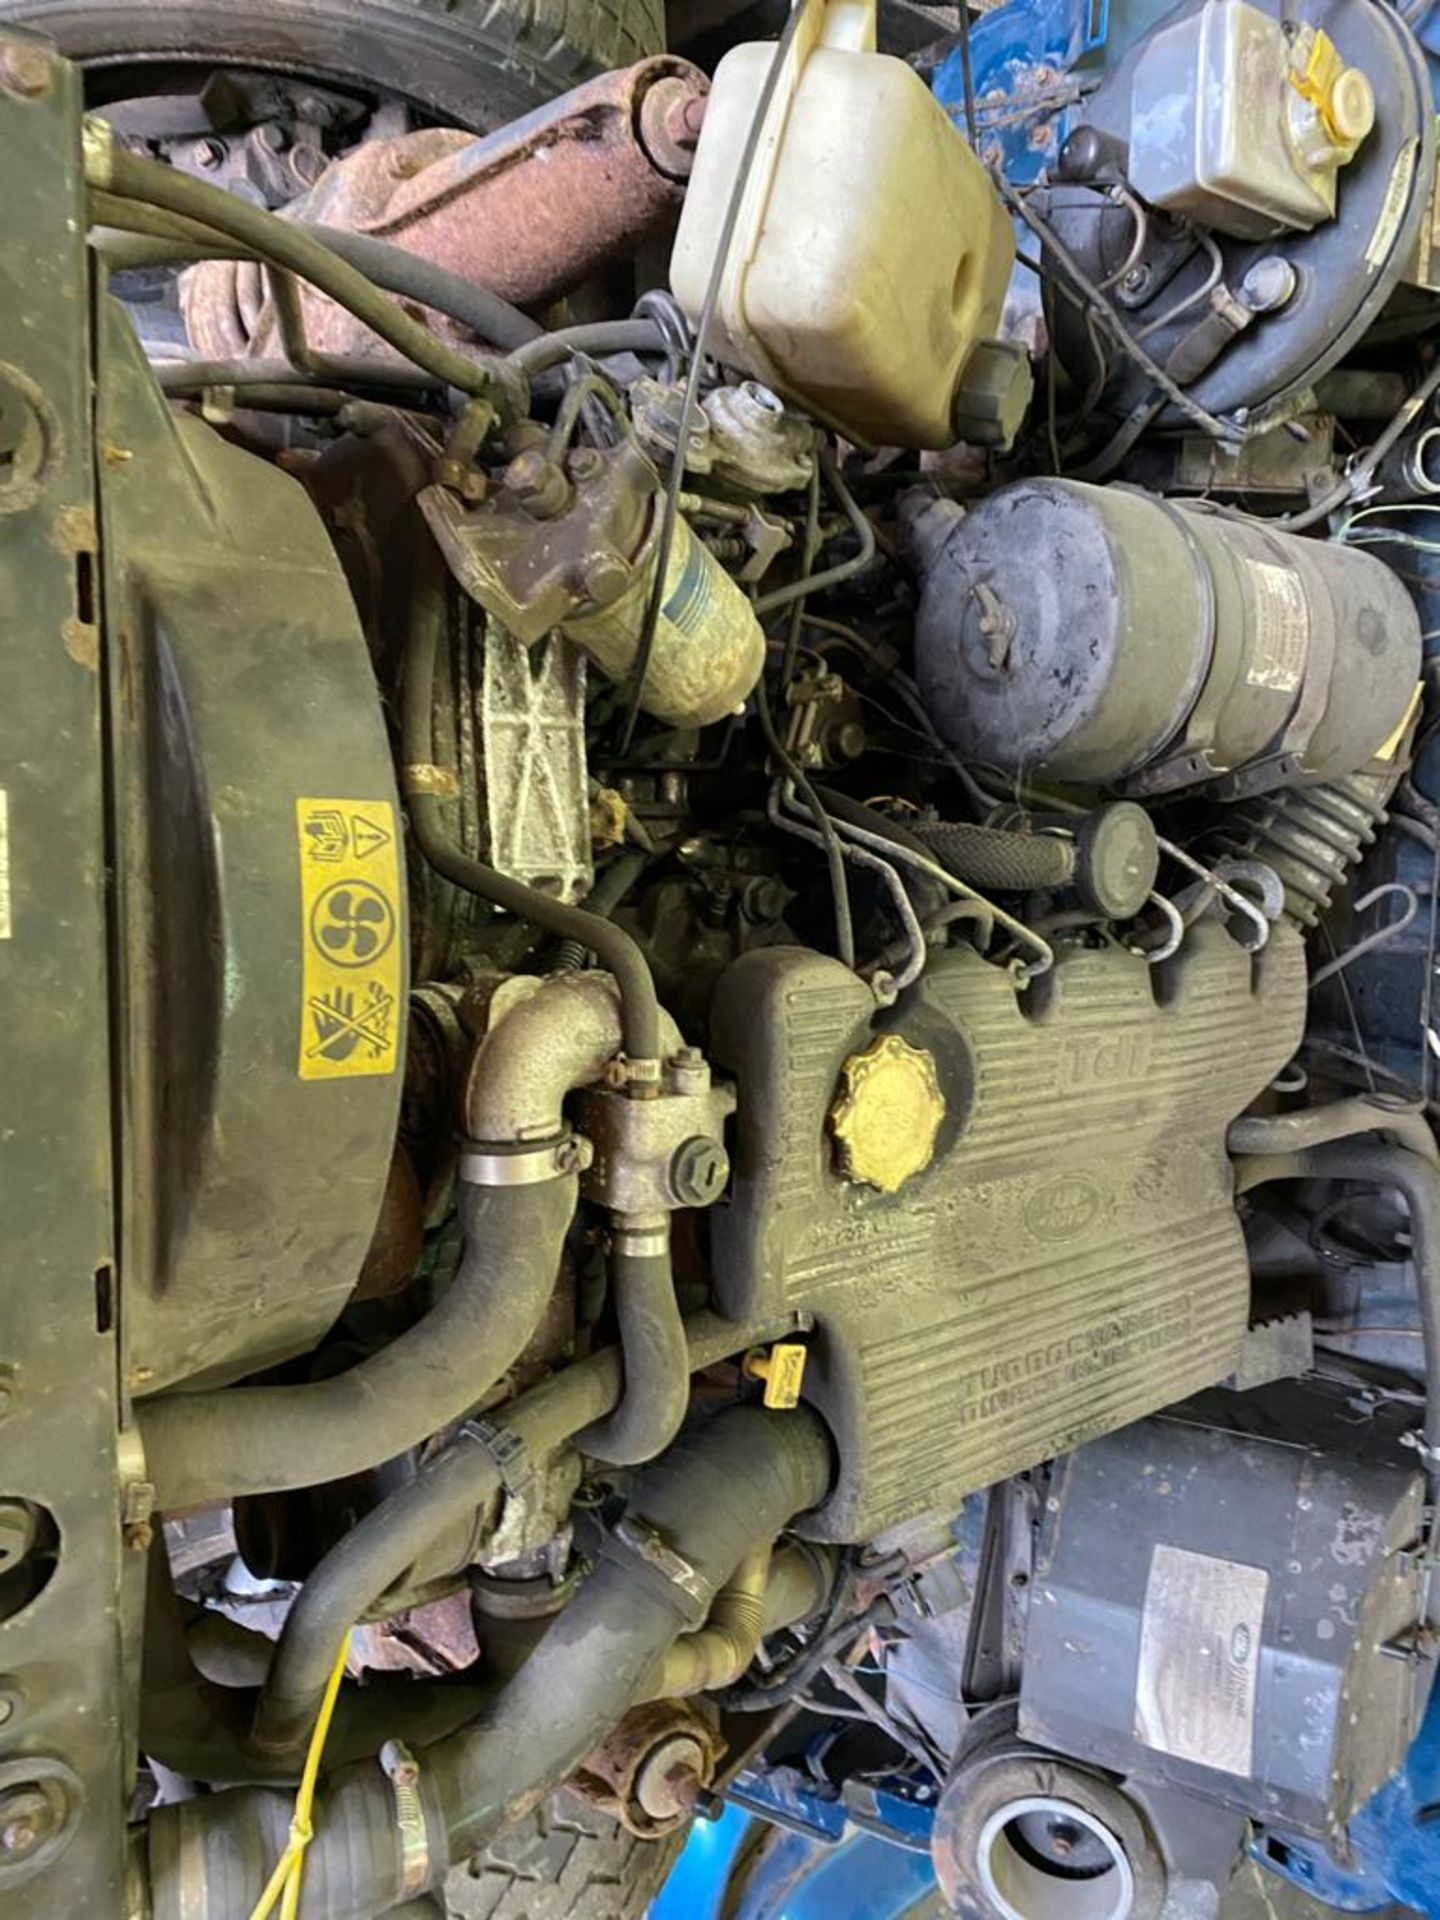 Land Rover 110 County, 300 TDI Engine Appears Mostly Complete - No Bumper, Bonnet, Glass etc As - Image 21 of 26